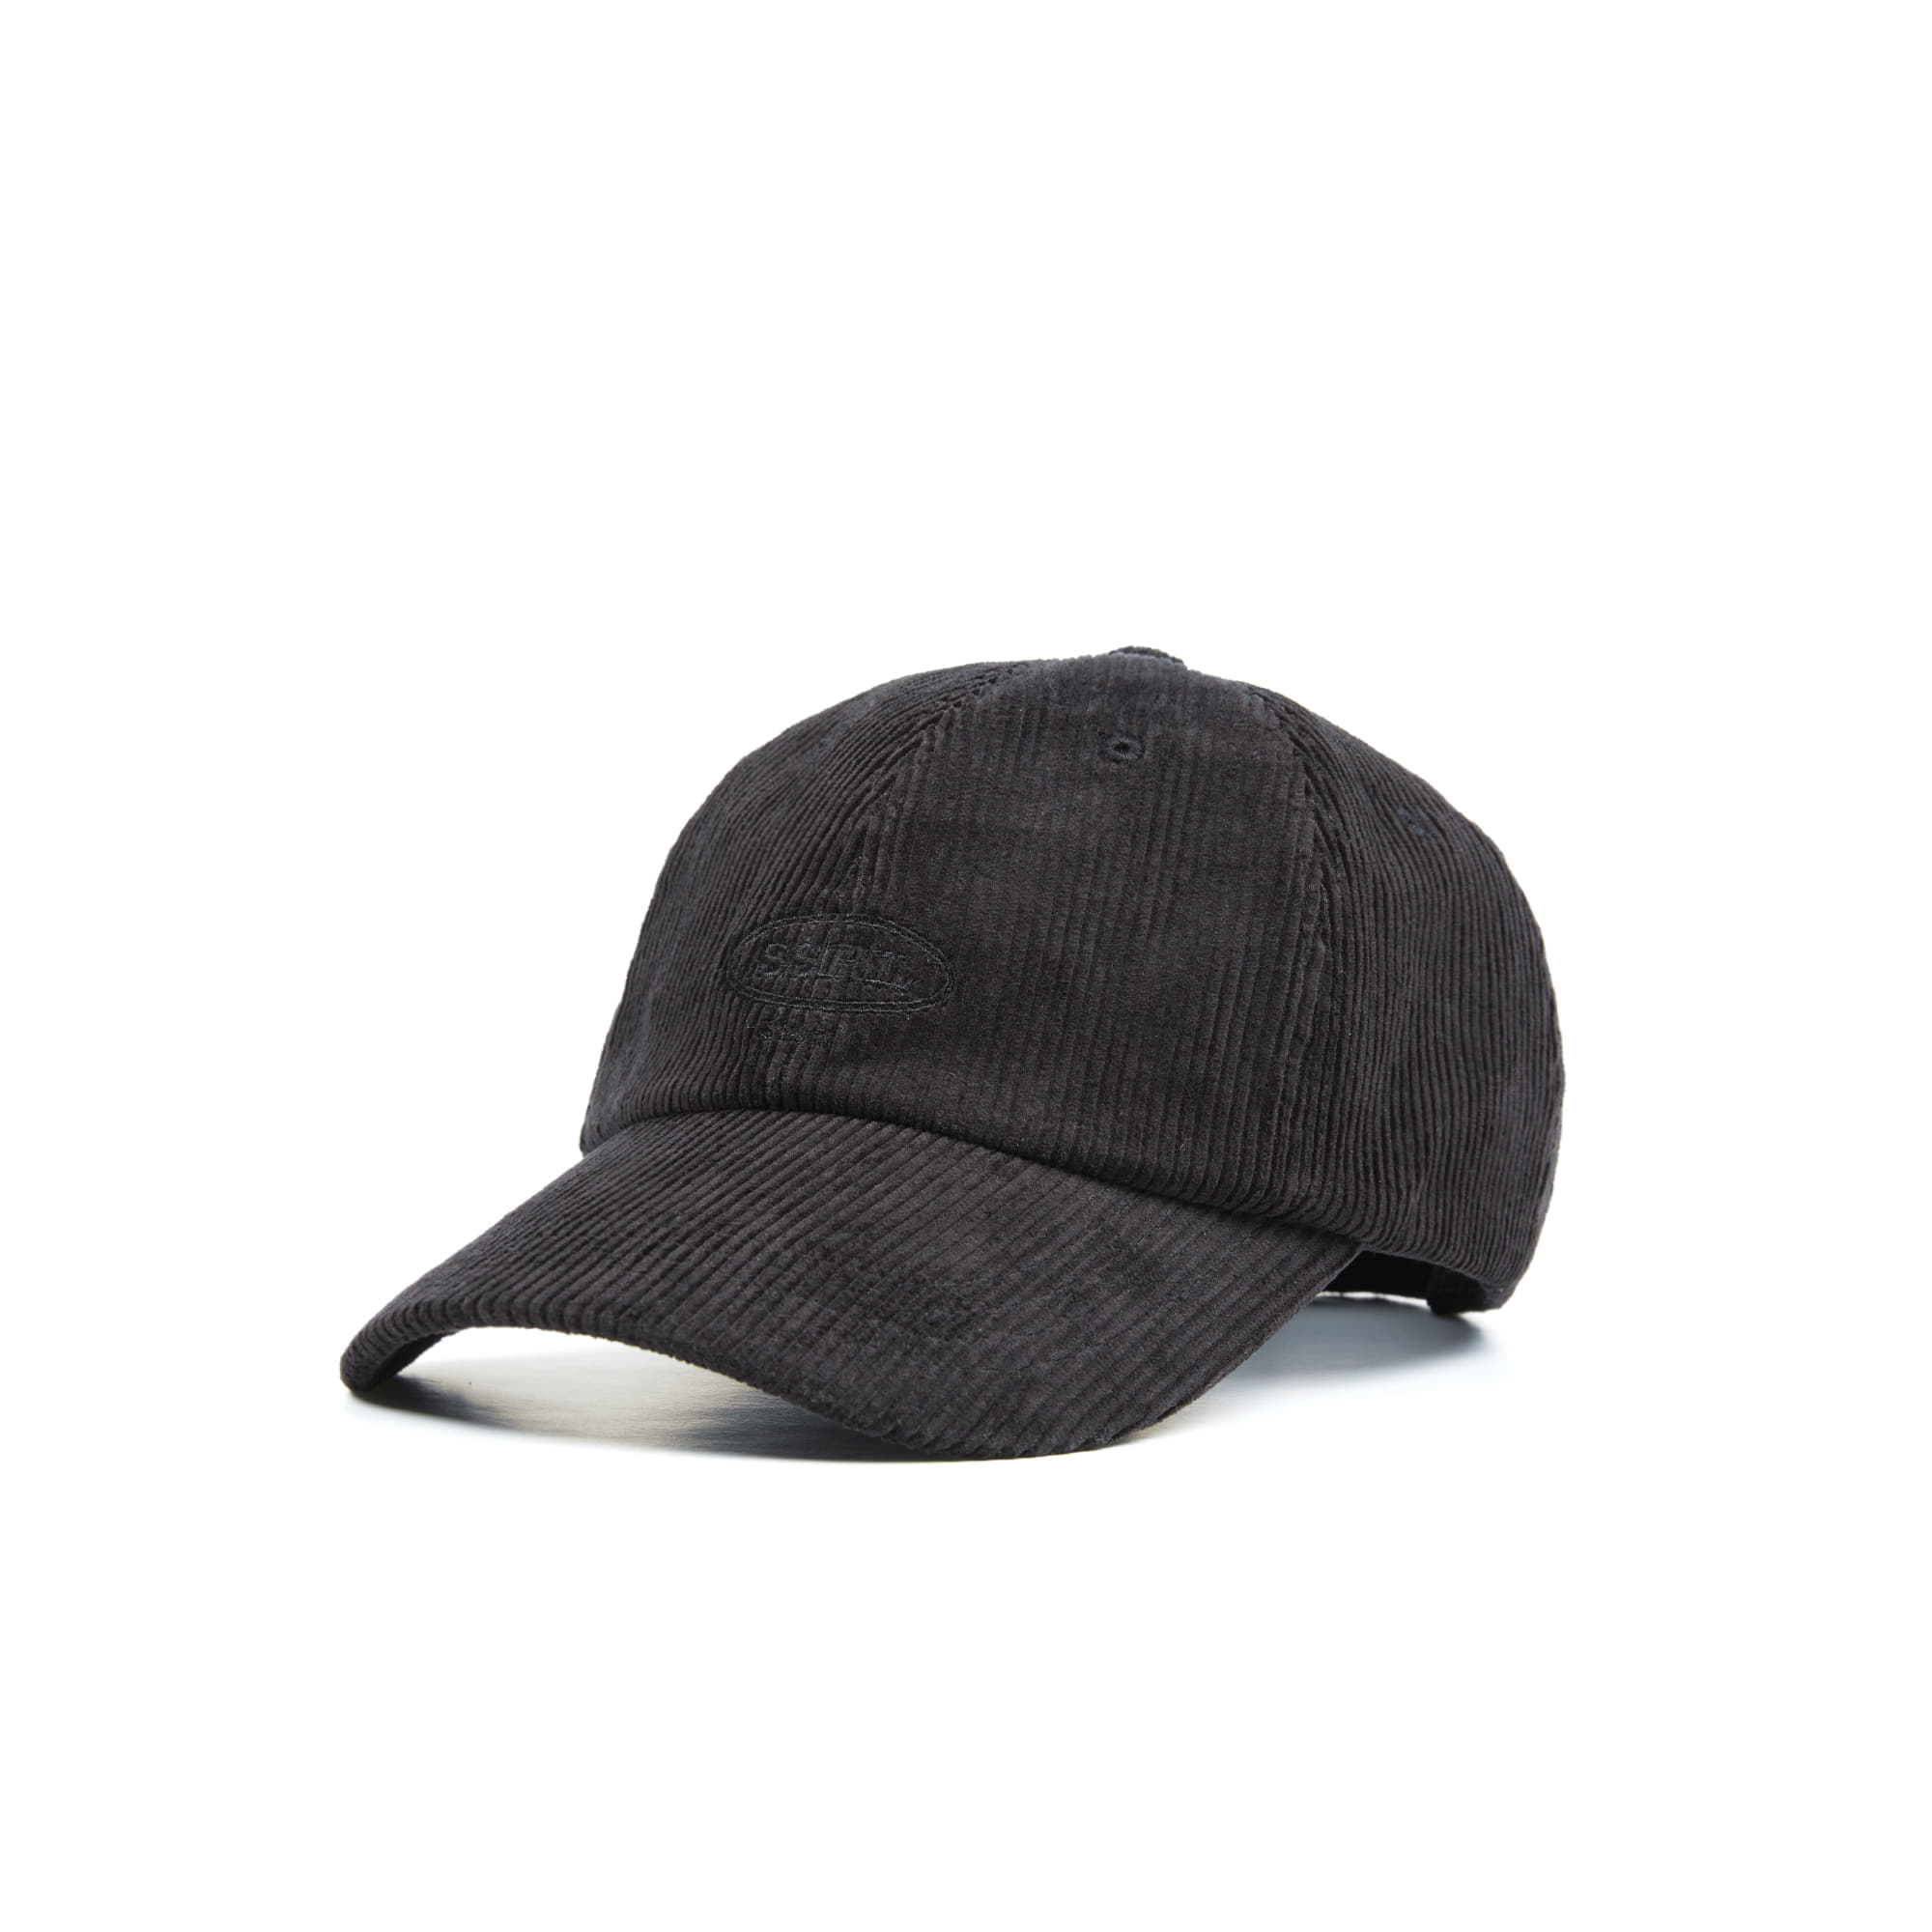 corduroy ball cap / black